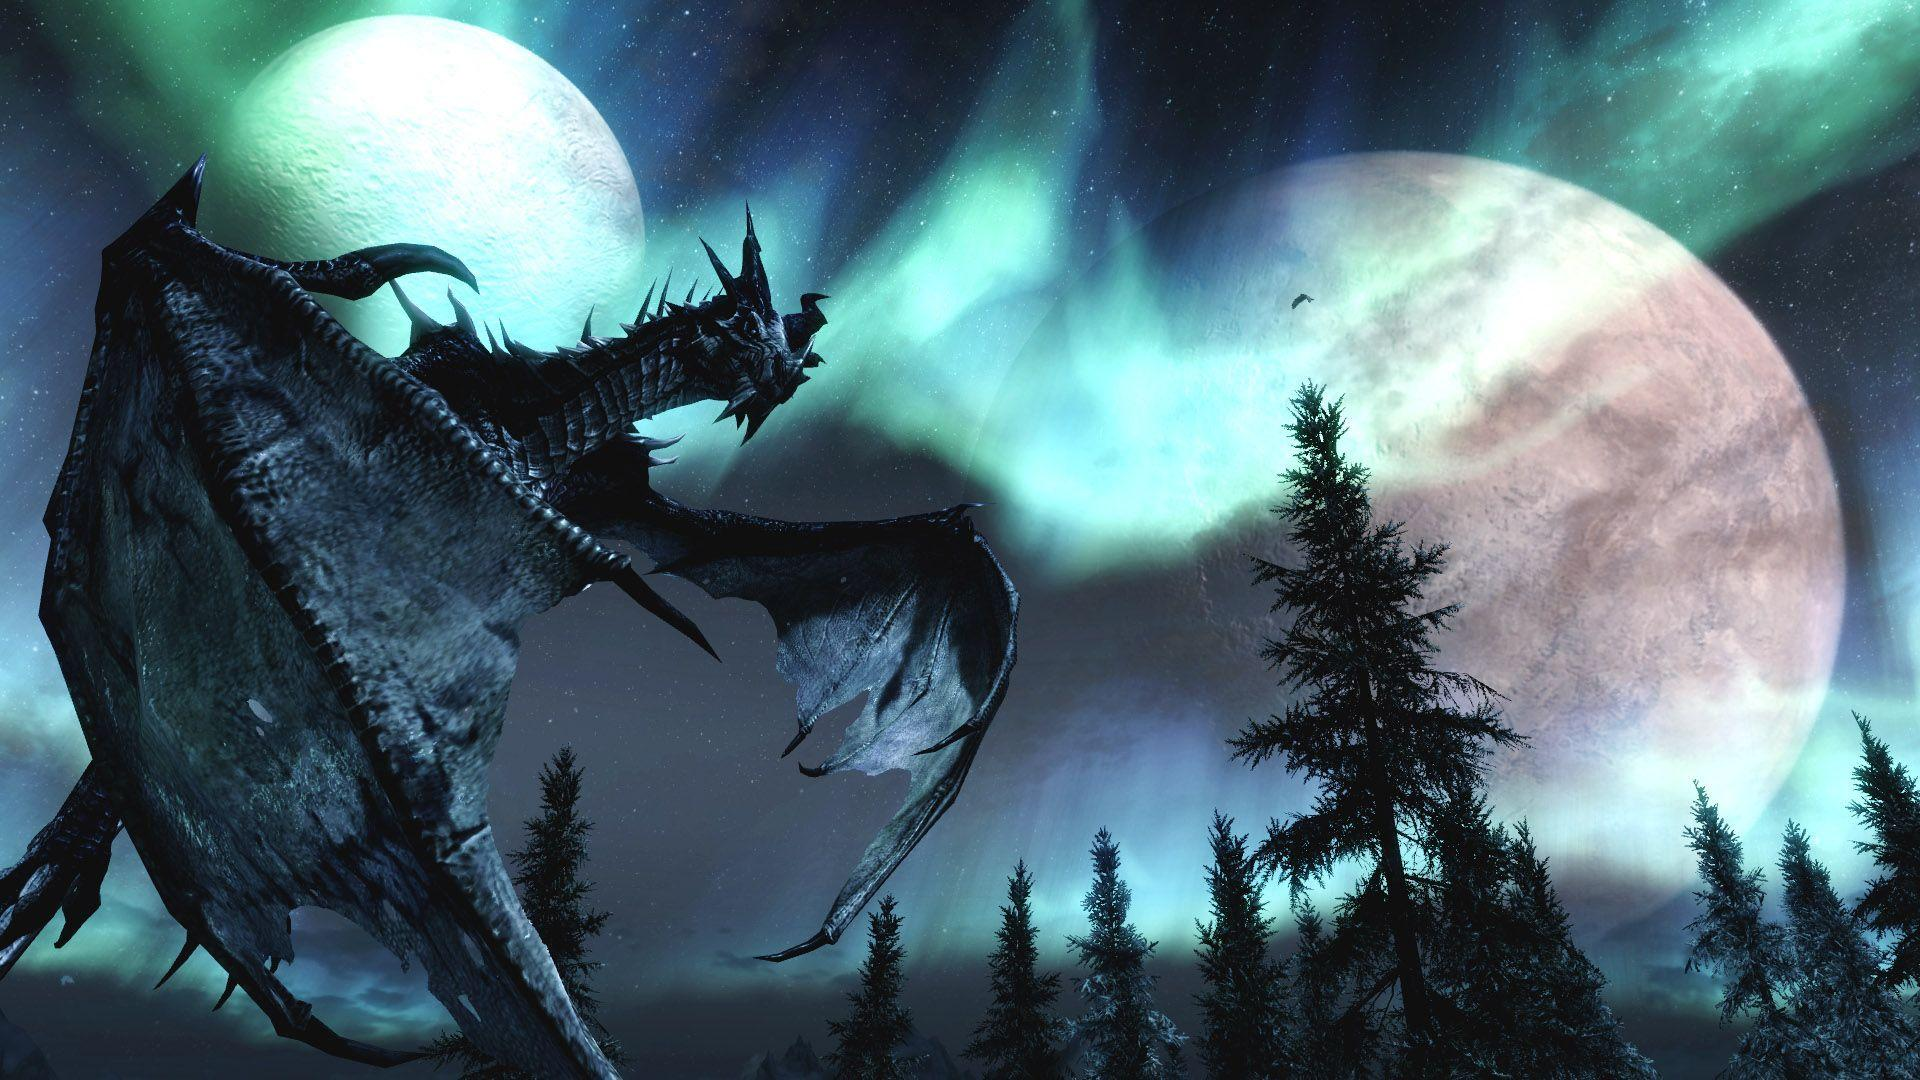 Description The Wallpapers Above Is Dragon Fire Skyrim Wallpapers In